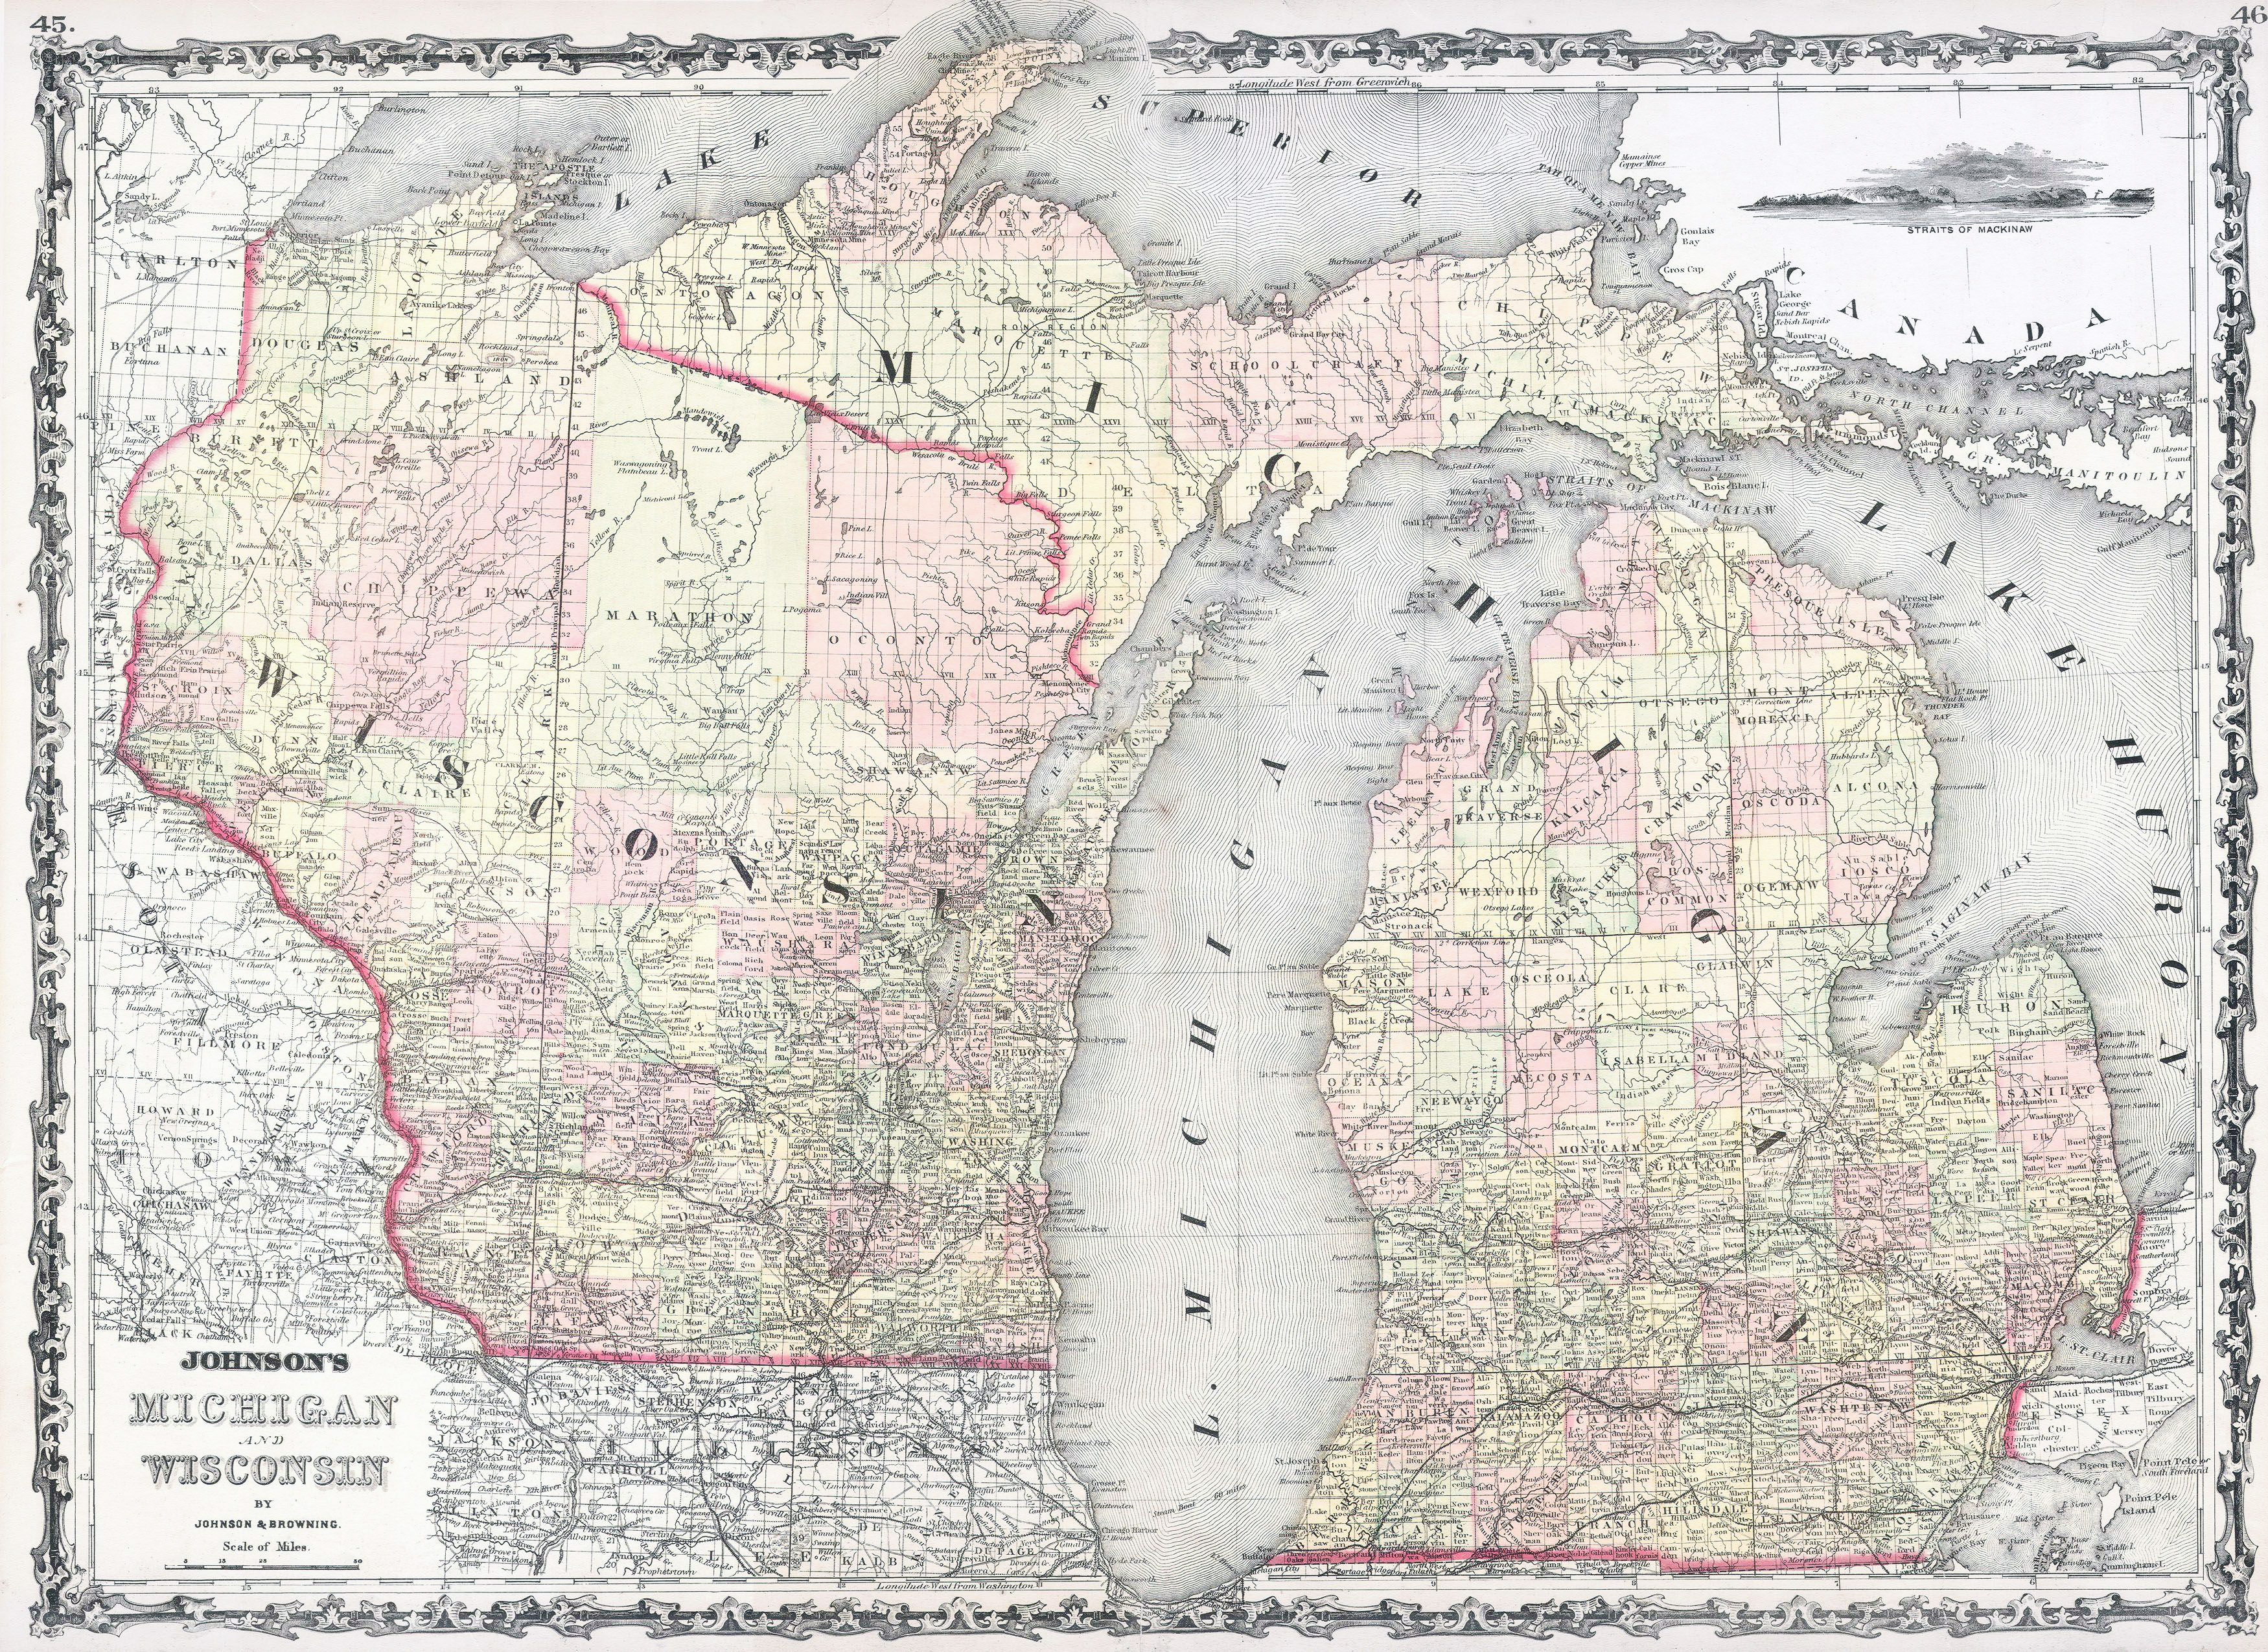 Detailed Michigan Map.Large Detailed Old Administrative Map Of Michigan And Wisconsin